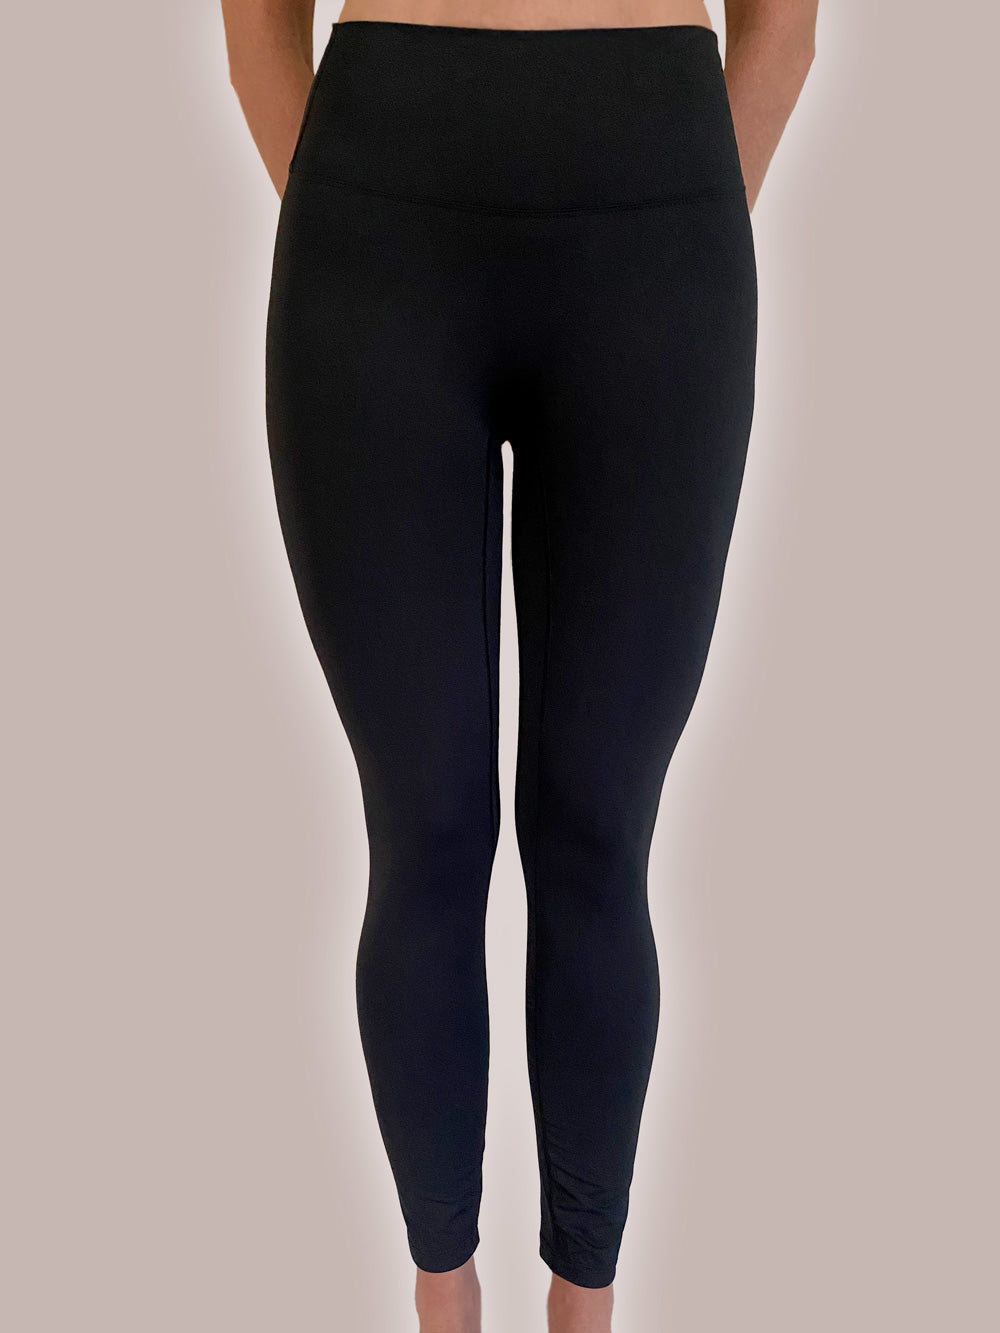 The Anahata Seamless Legging